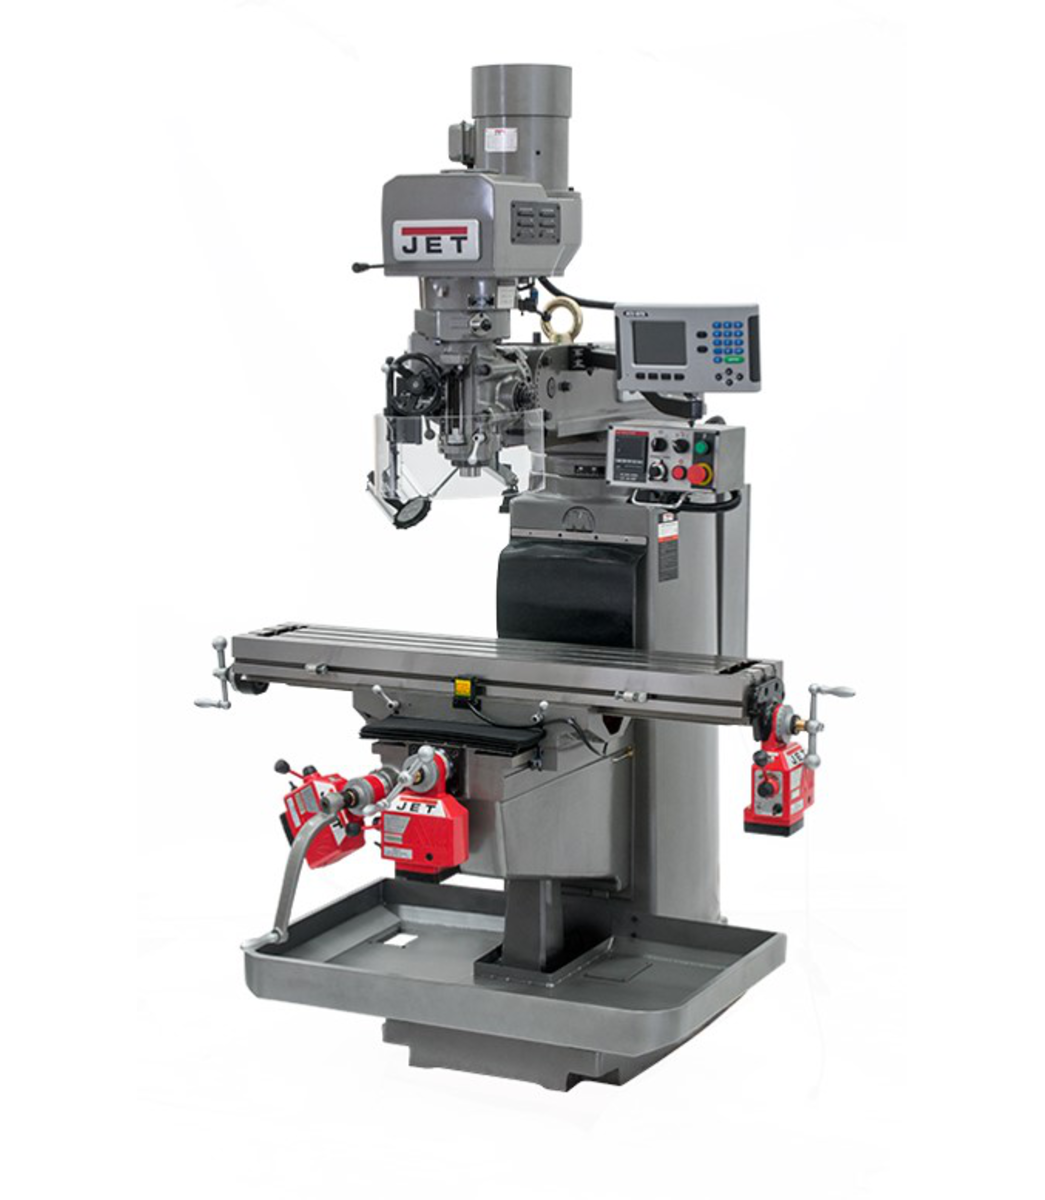 JTM-1050EVS2/230 Mill With 3-Axis Acu-Rite 303 DRO (Knee) With X, Y and Z-Axis Powerfeeds and Air Powered Draw Bar